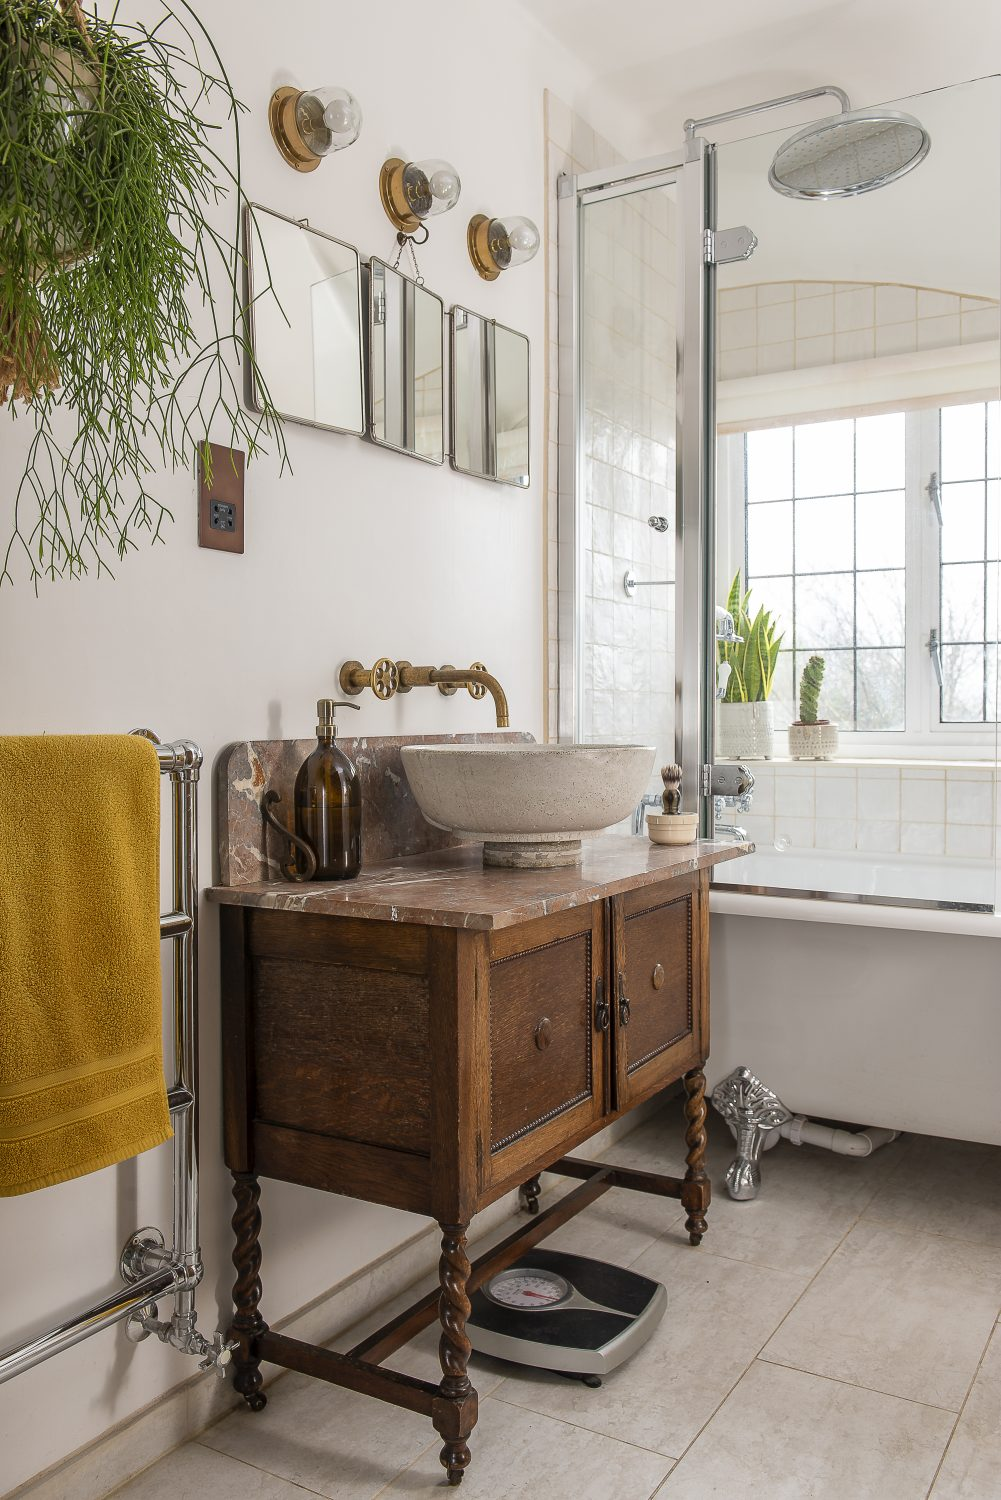 Justine has turned the small bathroom into a hotel-standard space, with a vintage free-standing vanity unit and brushed brass taps that perfectly reflect the aesthetic in the rest of the house. More houseplants lend a vibrant feel